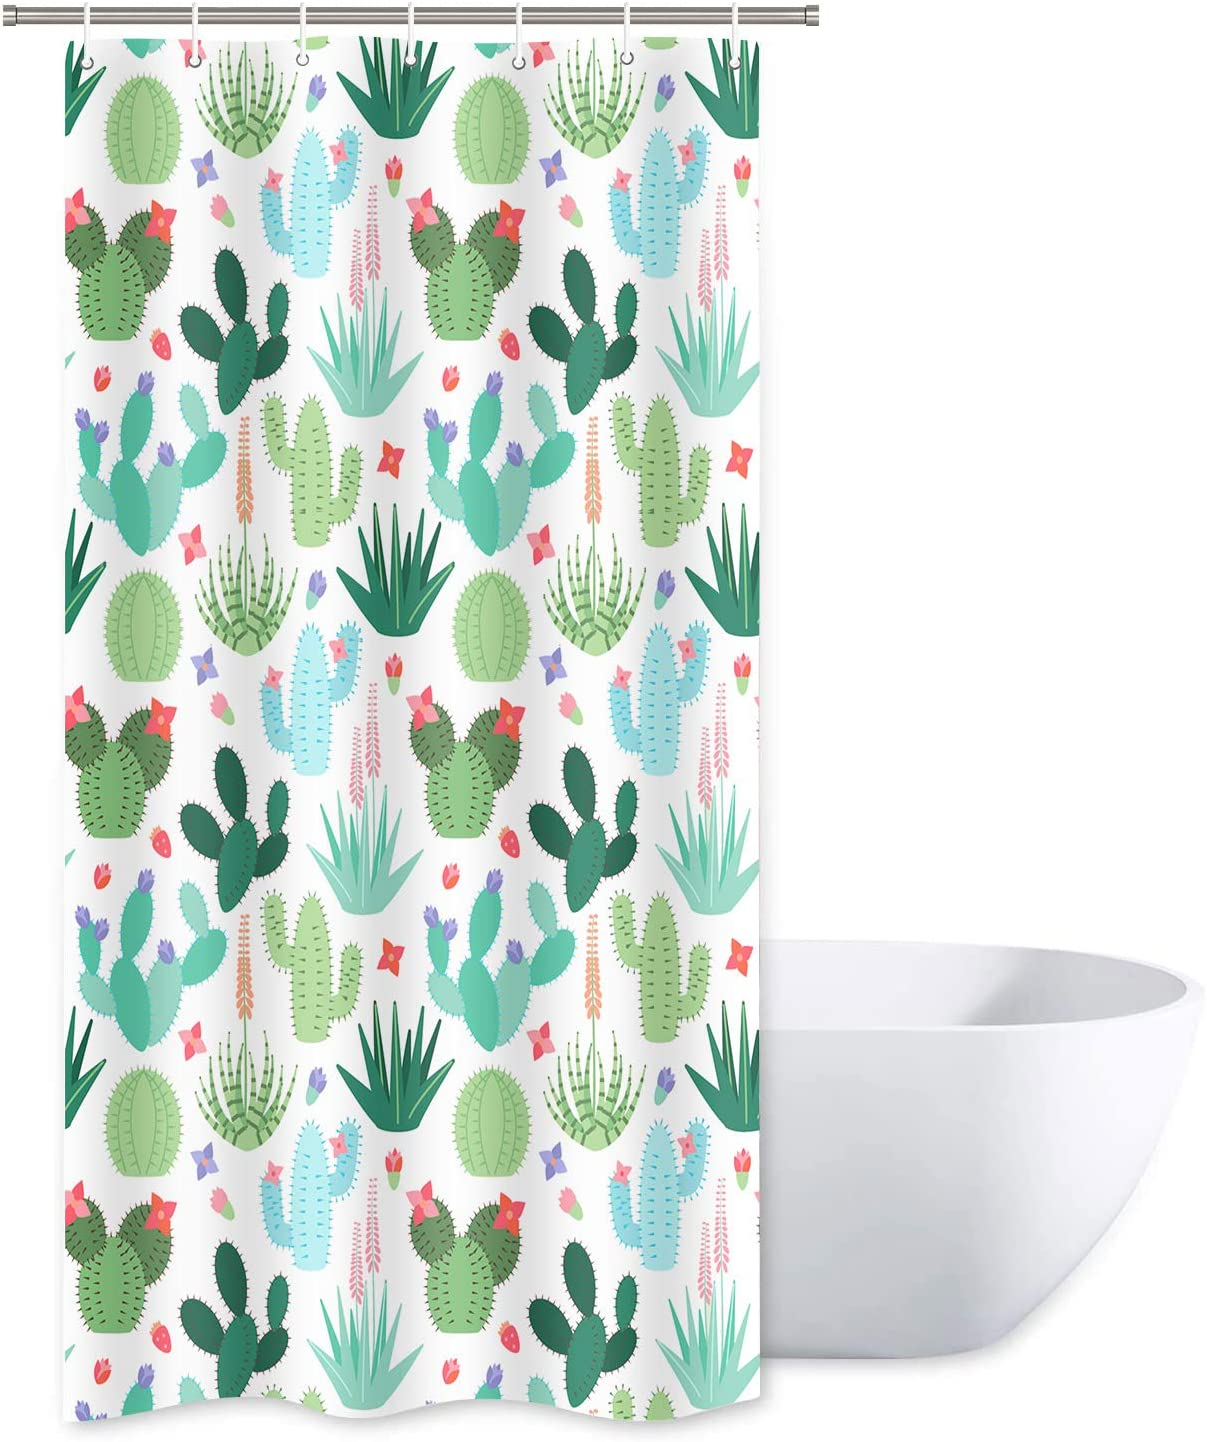 SDDSER Stall Cactus Shower Curtain Sets, Mexico Fiesta Garden Desert Plant Floral Small Bathroom Curtains, 36x72 inch with 7 Free Hooks, YLWYSD83